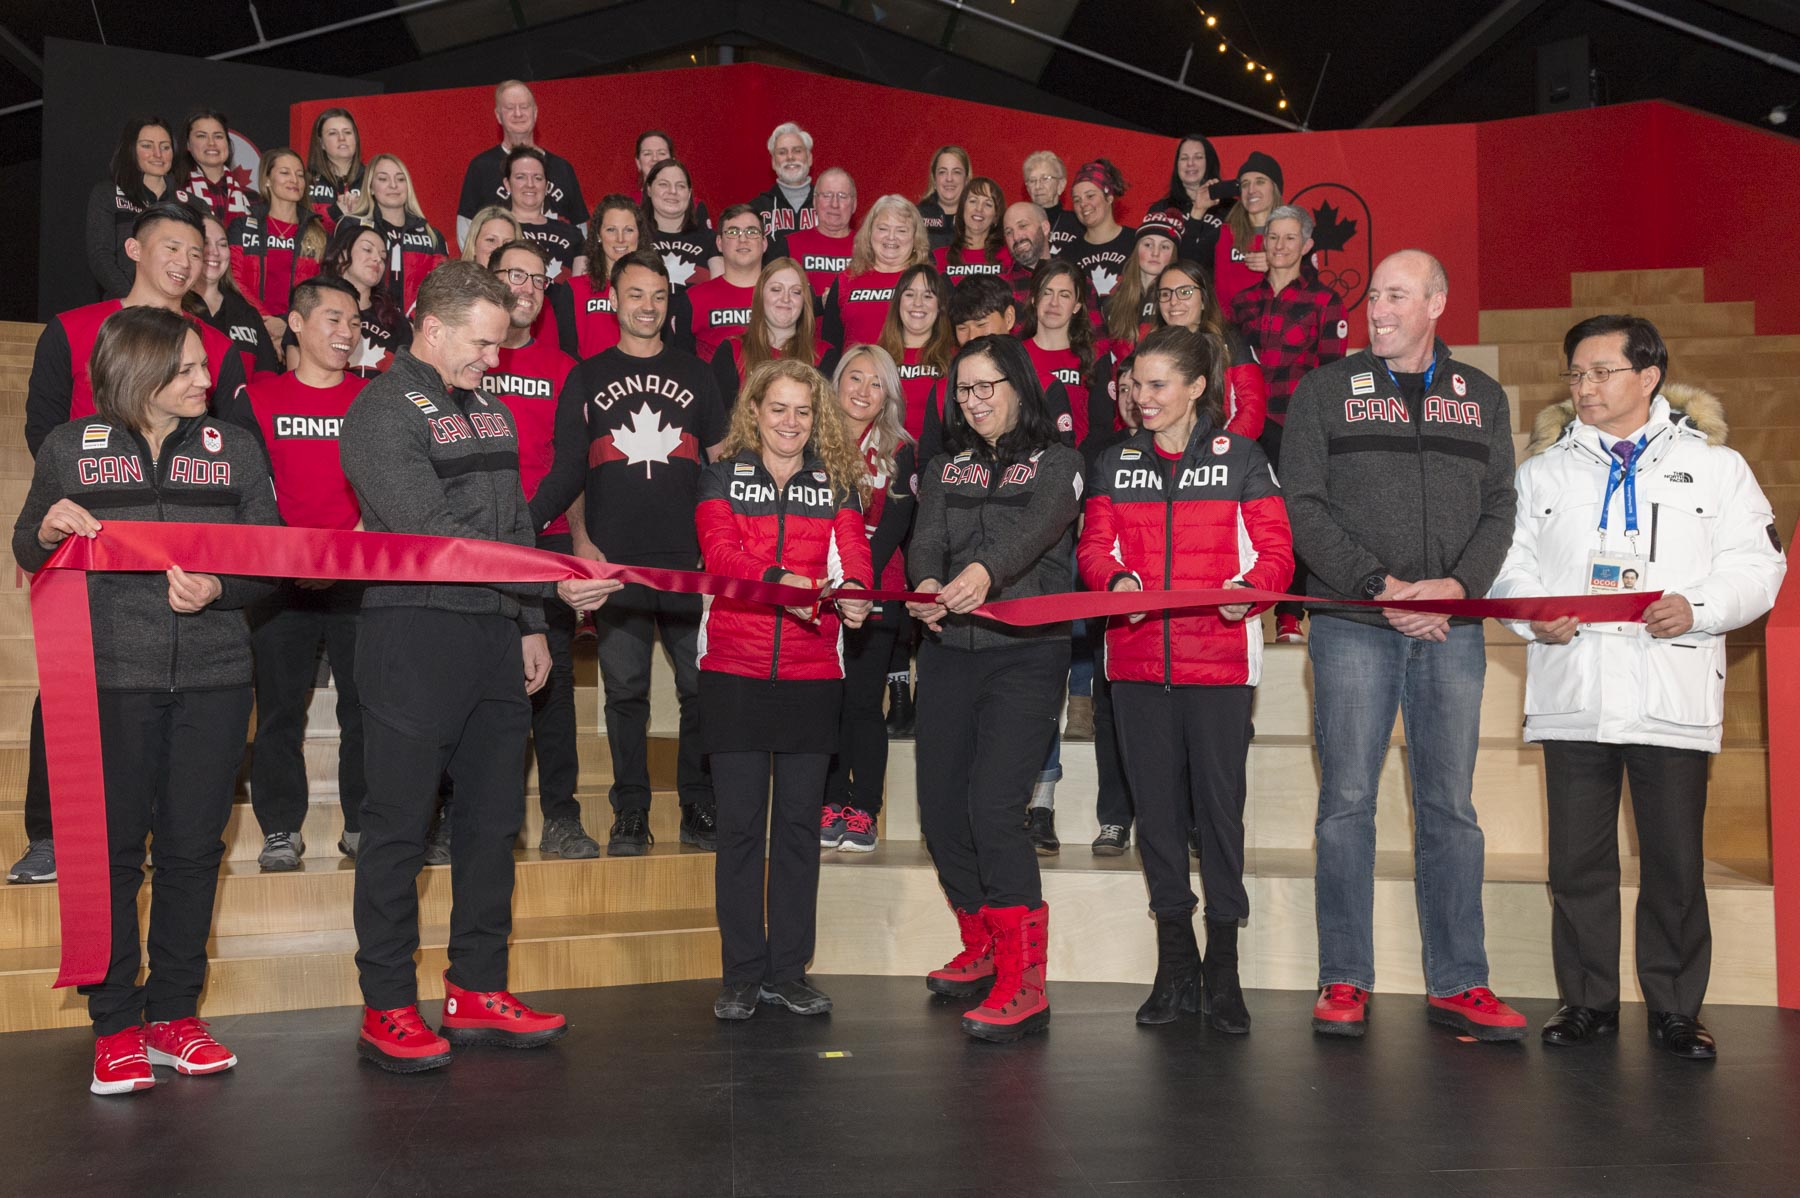 Joined by Canadian Olympic Committee representatives, the Governor General participated in the ribbon-cutting ceremony marking the official opening of Canada Olympic House.